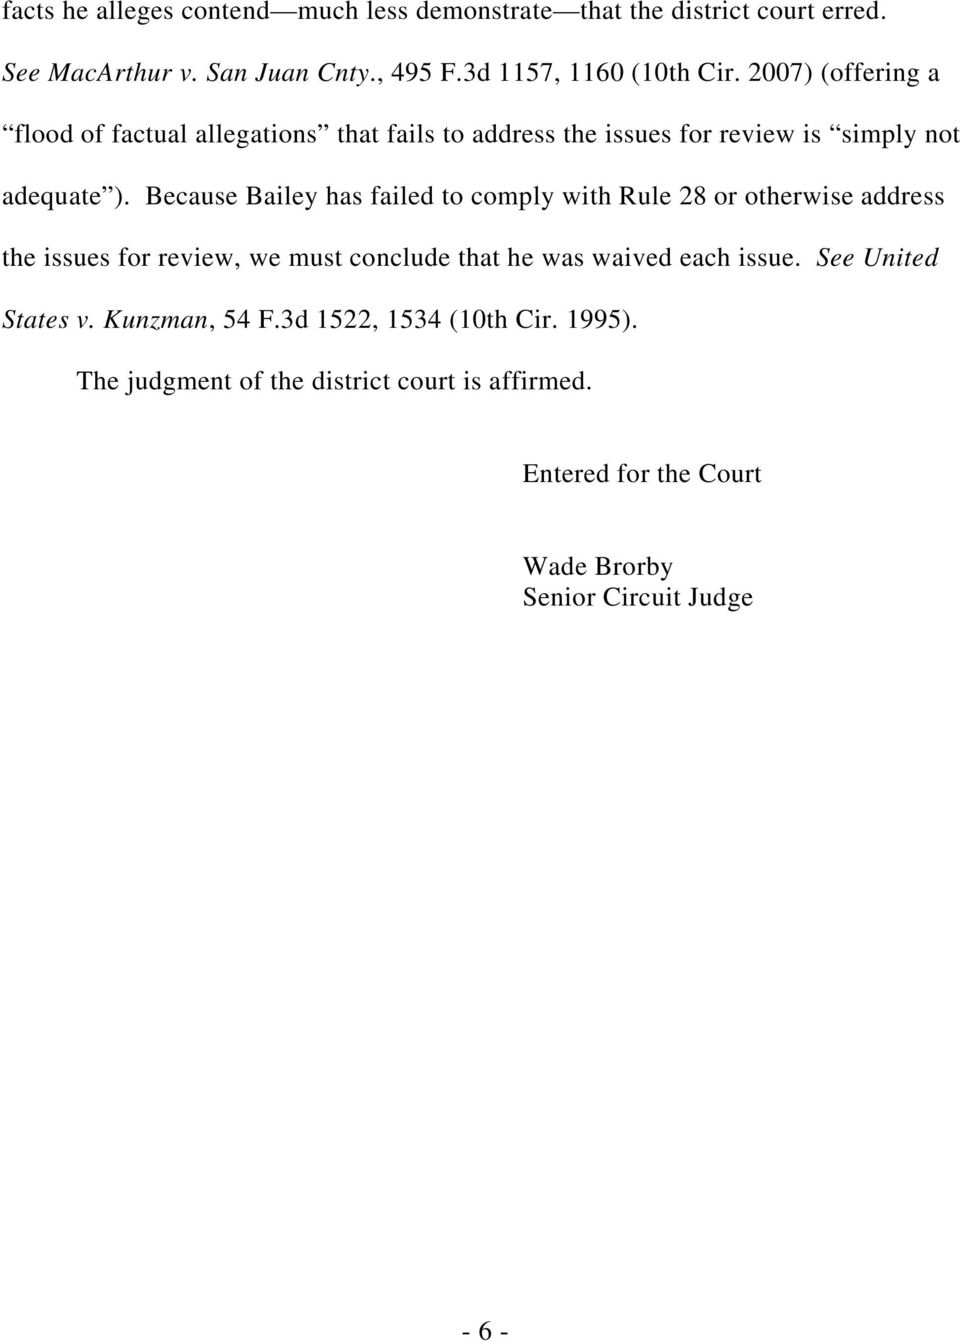 10th Circuit Rules That District Courts >> United States Court Of Appeals For The Tenth Circuit Order And